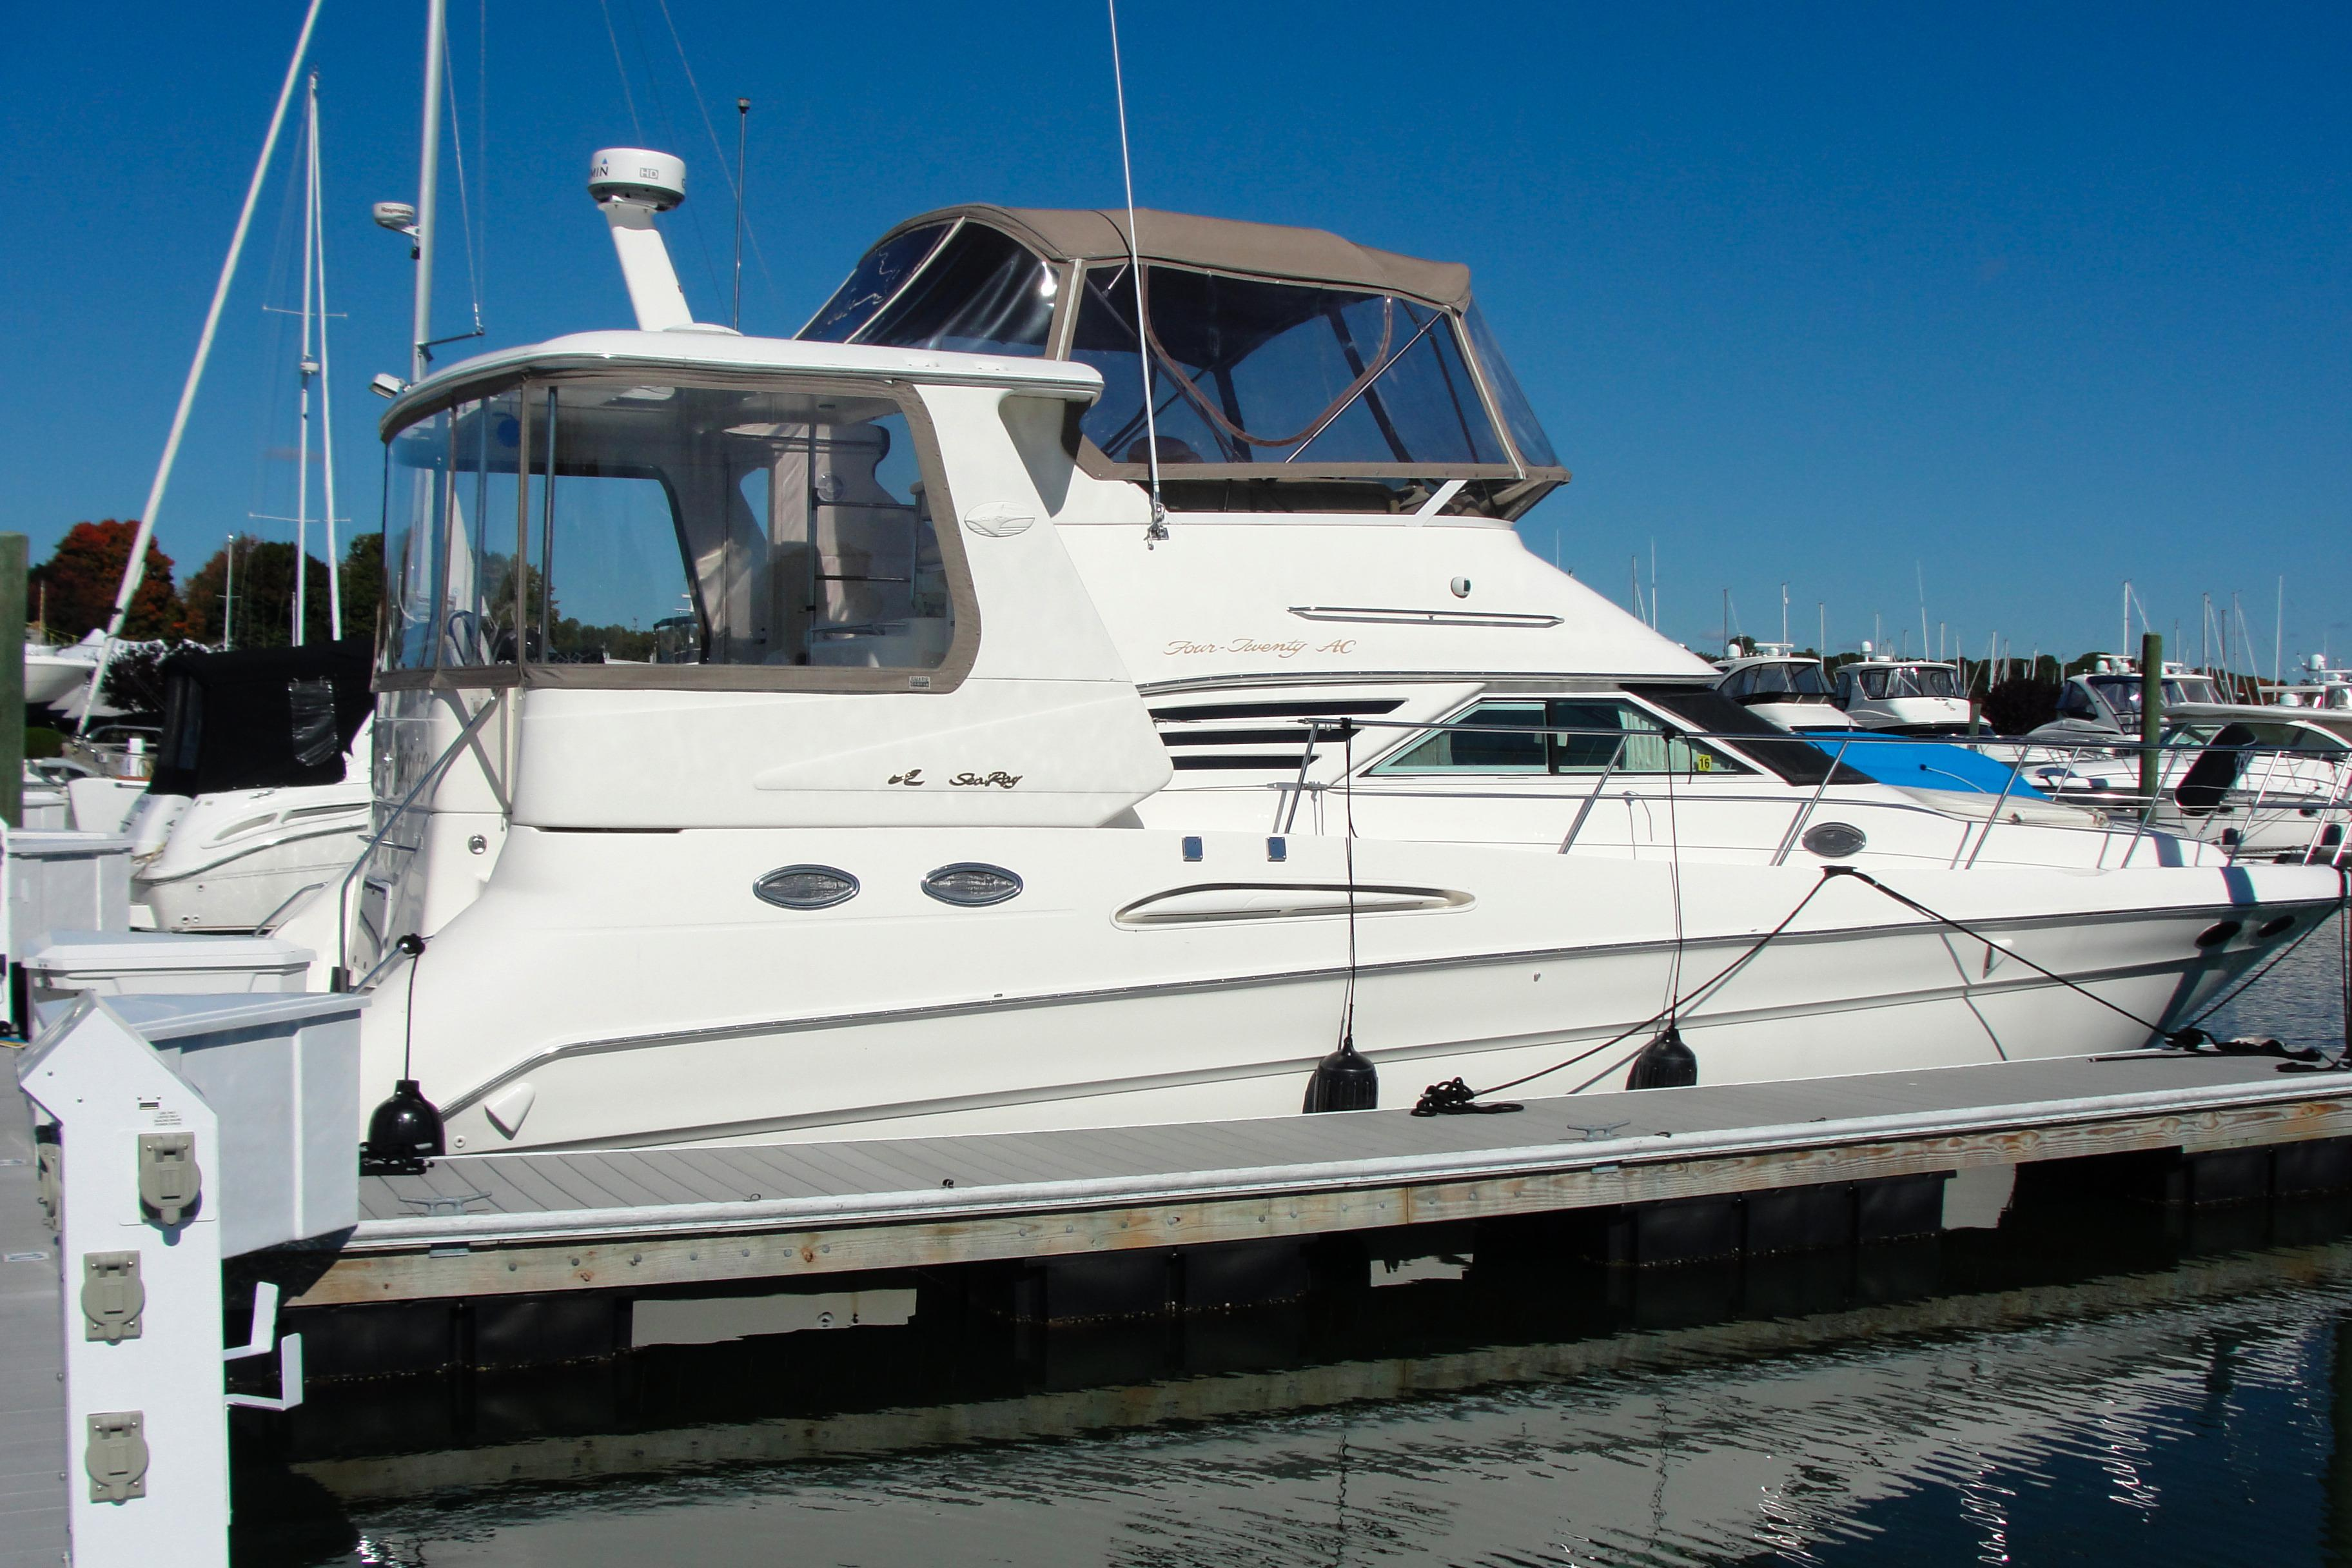 Sea Ray Wiring Diagram 380 Ac Electrical Diagrams 1999 420 Aft Cabin Power Boat For Sale Www Yachtworld Com Evinrude Etec